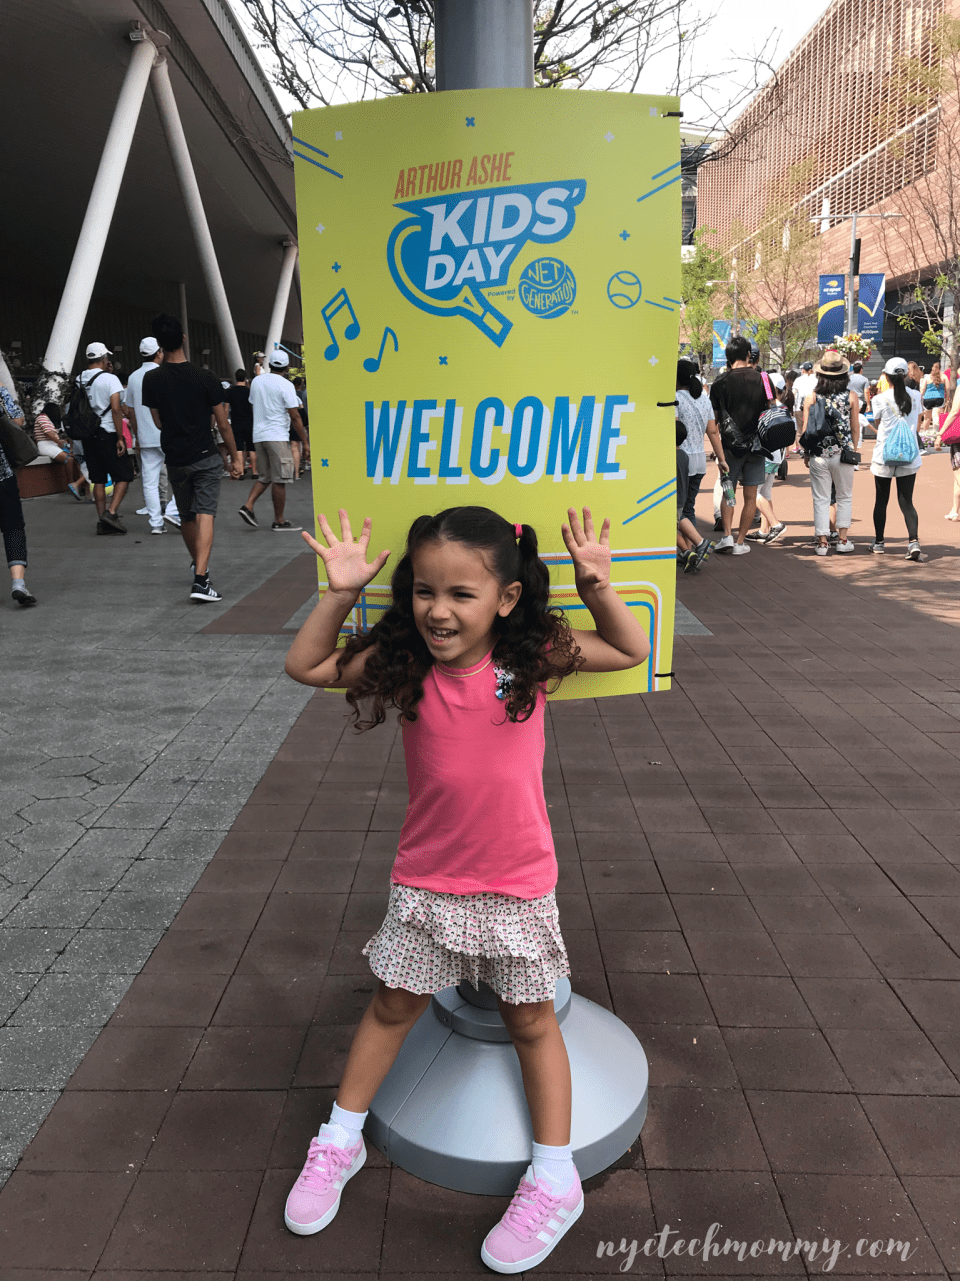 Arthur Ashe Kids Day with Emirates